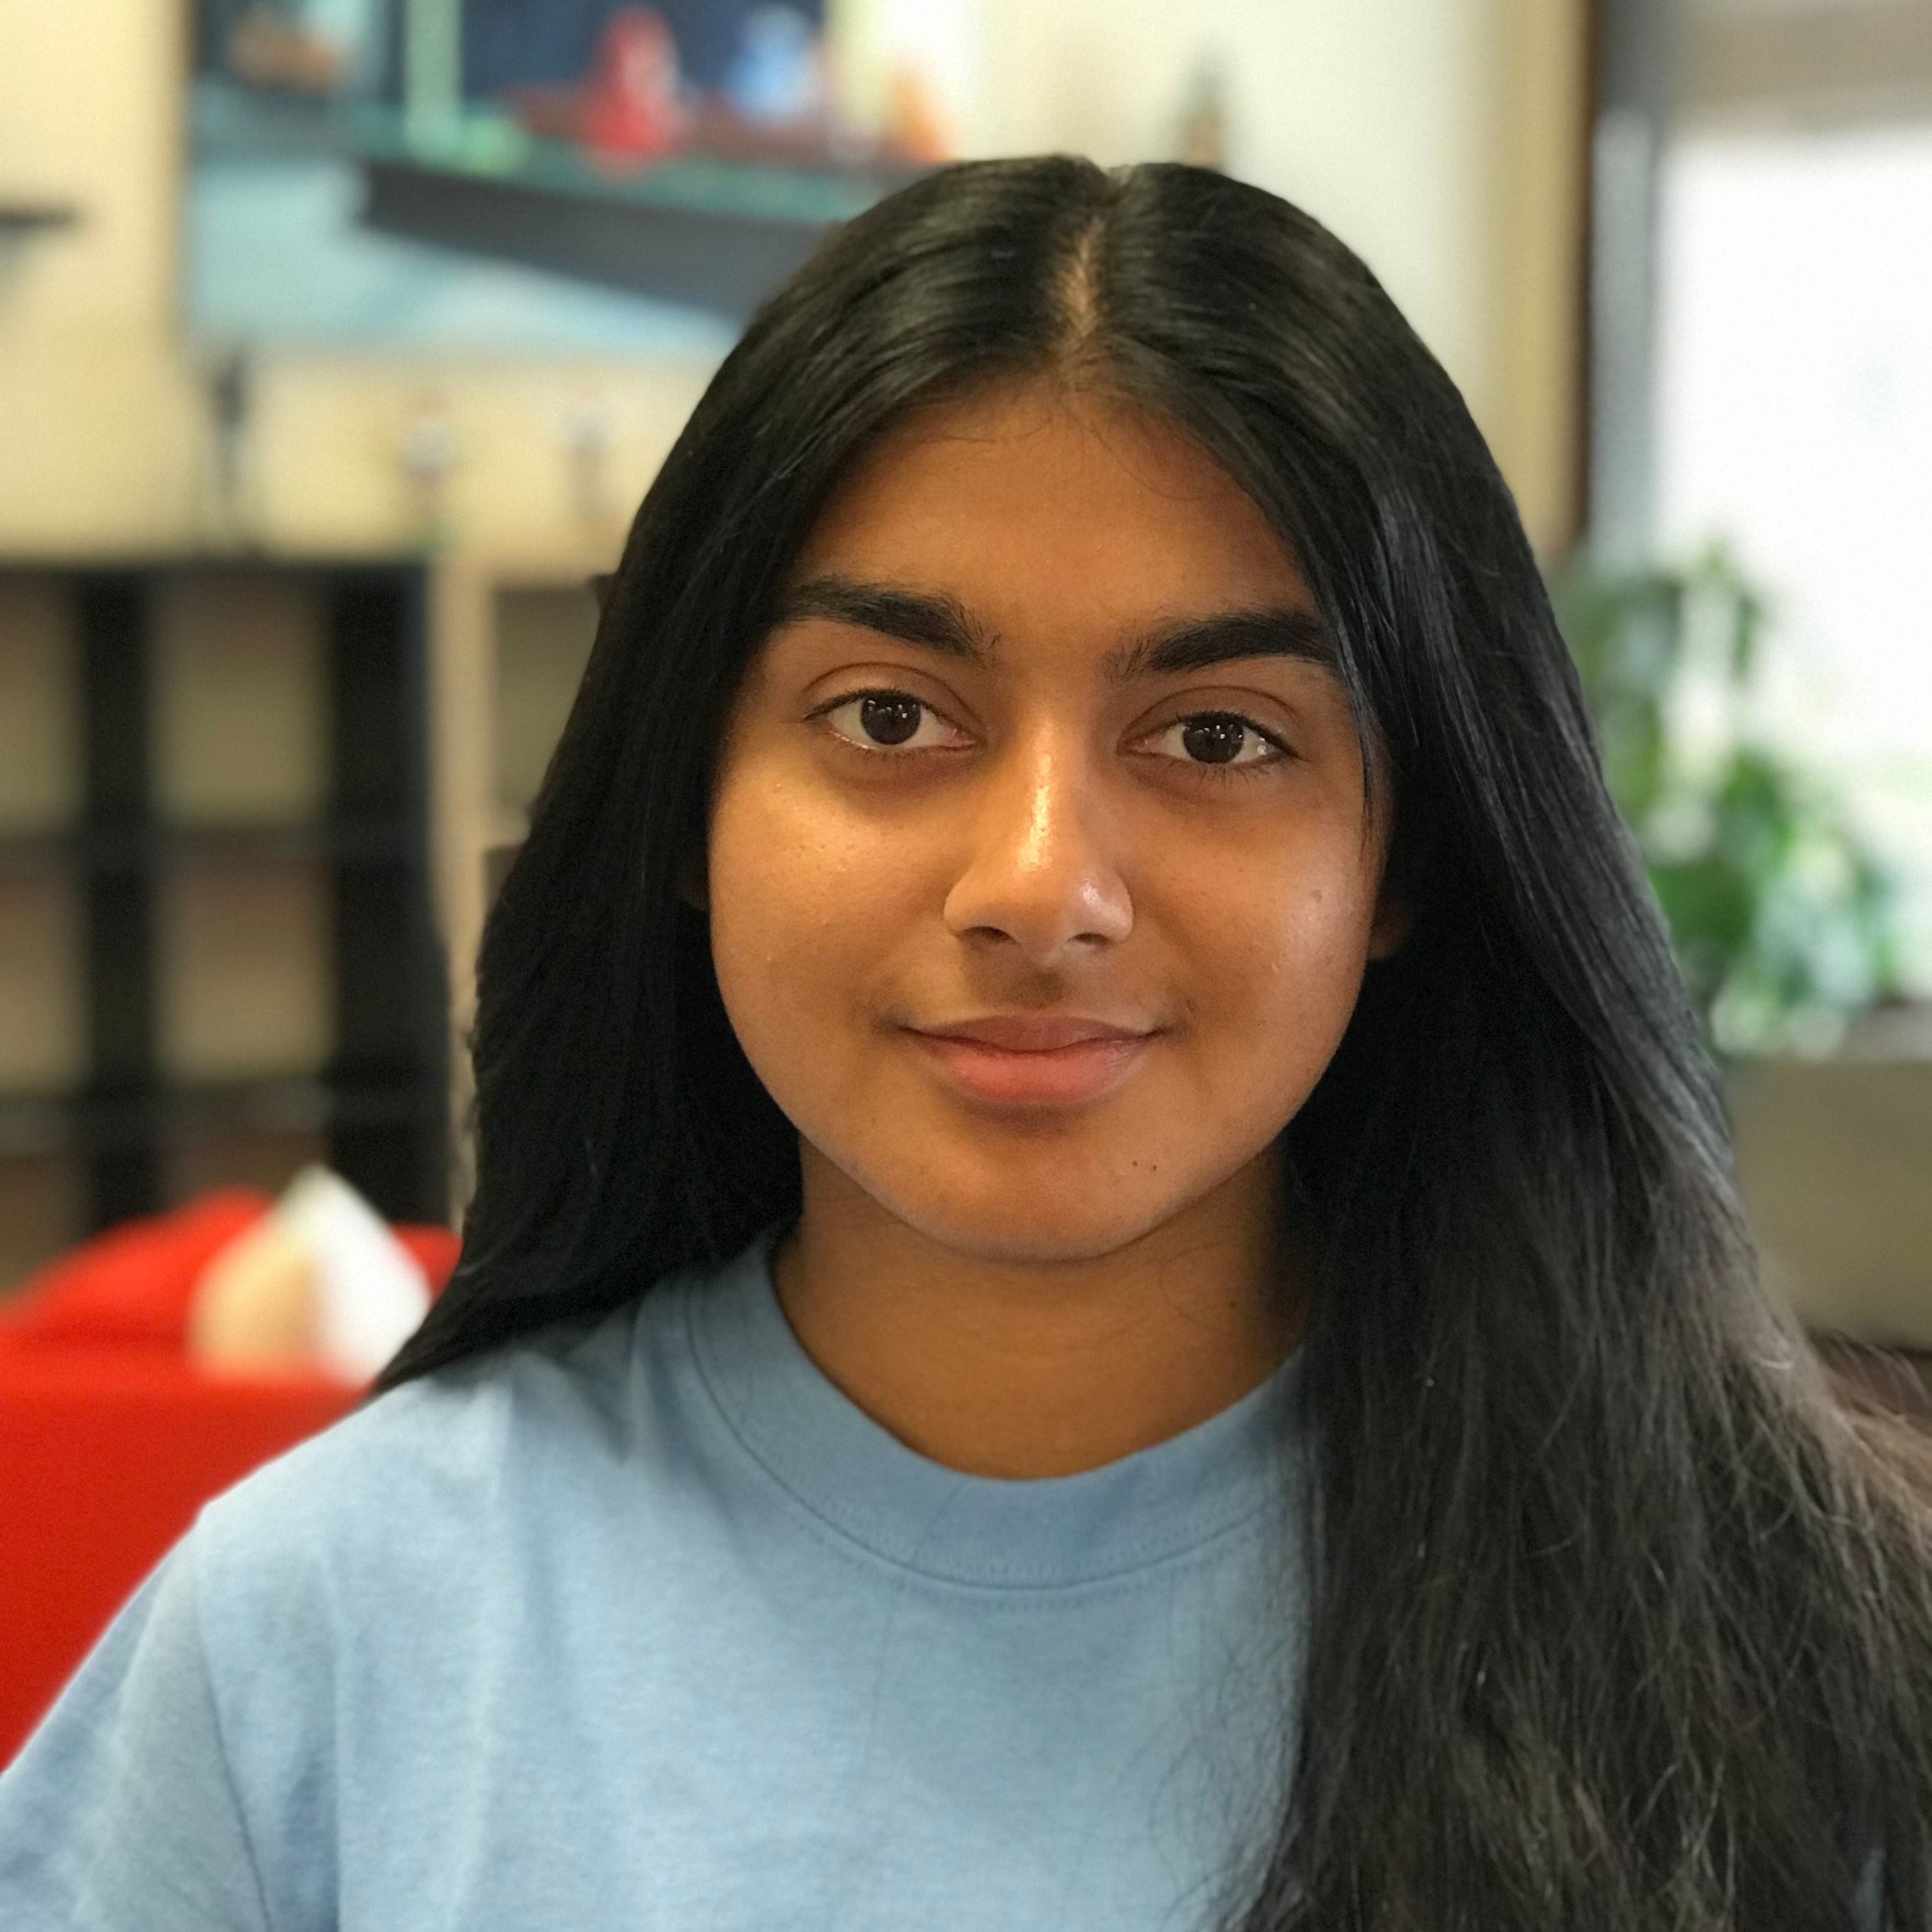 Muskaan Sandhu  - American Canyon High School Class of 2020  Interests: Biology, Cooking, Badminton, Reading, Netflix  Hello!  My name is Muskaan Sandhu and I am an upcoming Senior at American Canyon High.   I'm involved in several extracurricular activities on campus, including National Honors Society, UNICEF, and Link Crew.   I love working with children and my main goal is to become a pediatrician.  In my free time, I like to volunteer at the Boys and Girls Club as well as the emergency department at Kaiser.  I look forward to having a lot of fun at the summer camps!